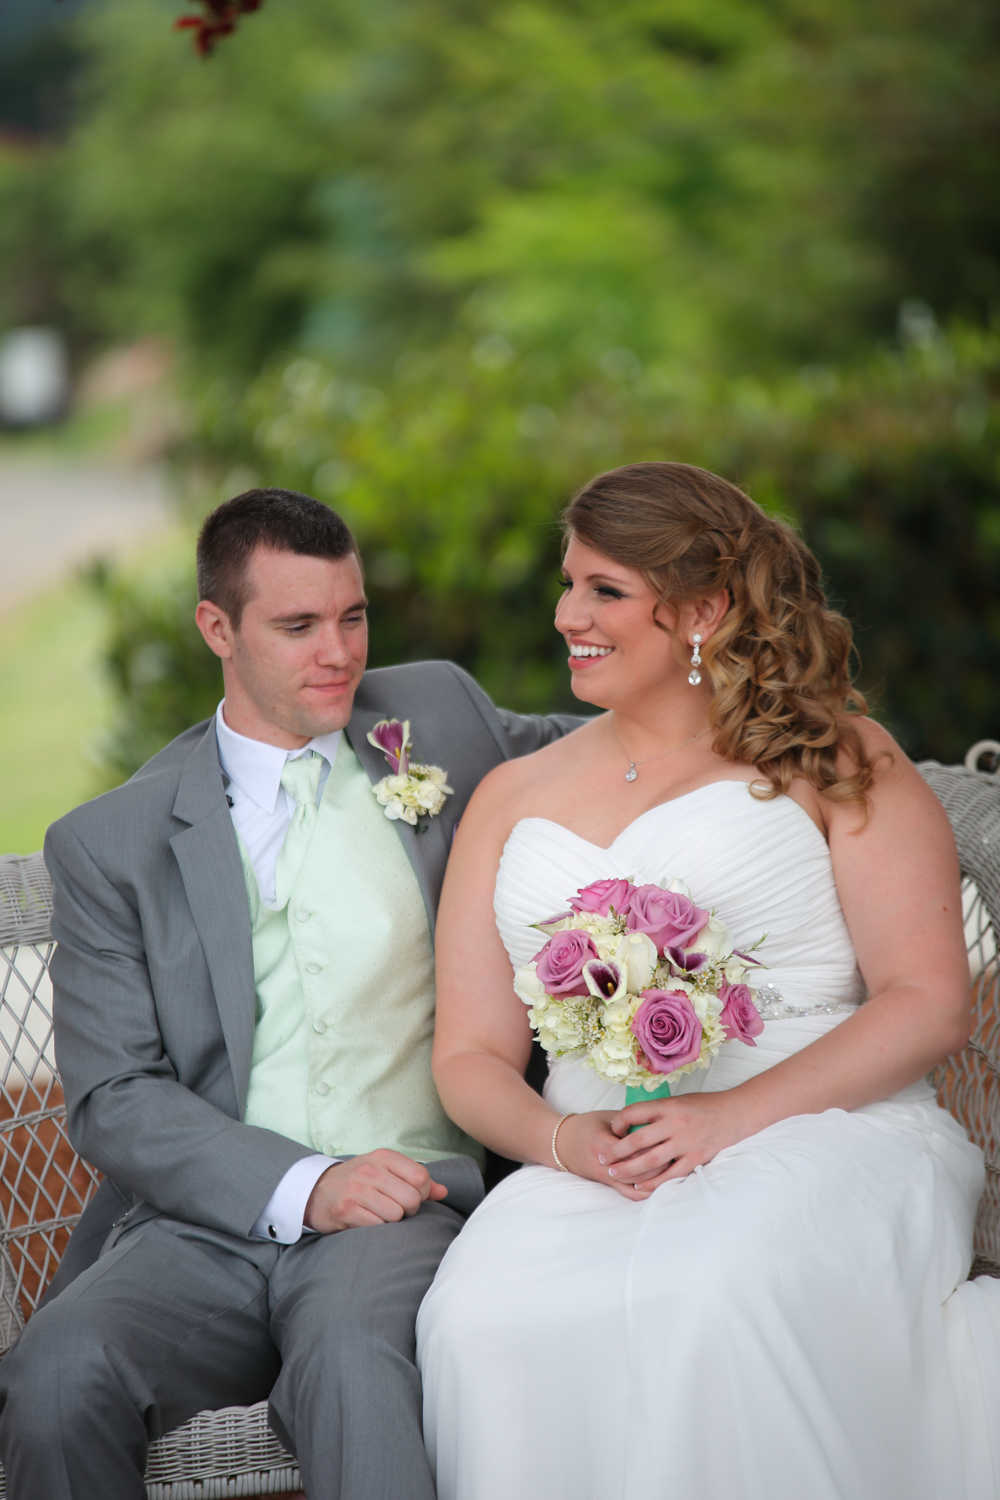 Wedding Photos Hidden Meadows Snohomish Washington21.jpg